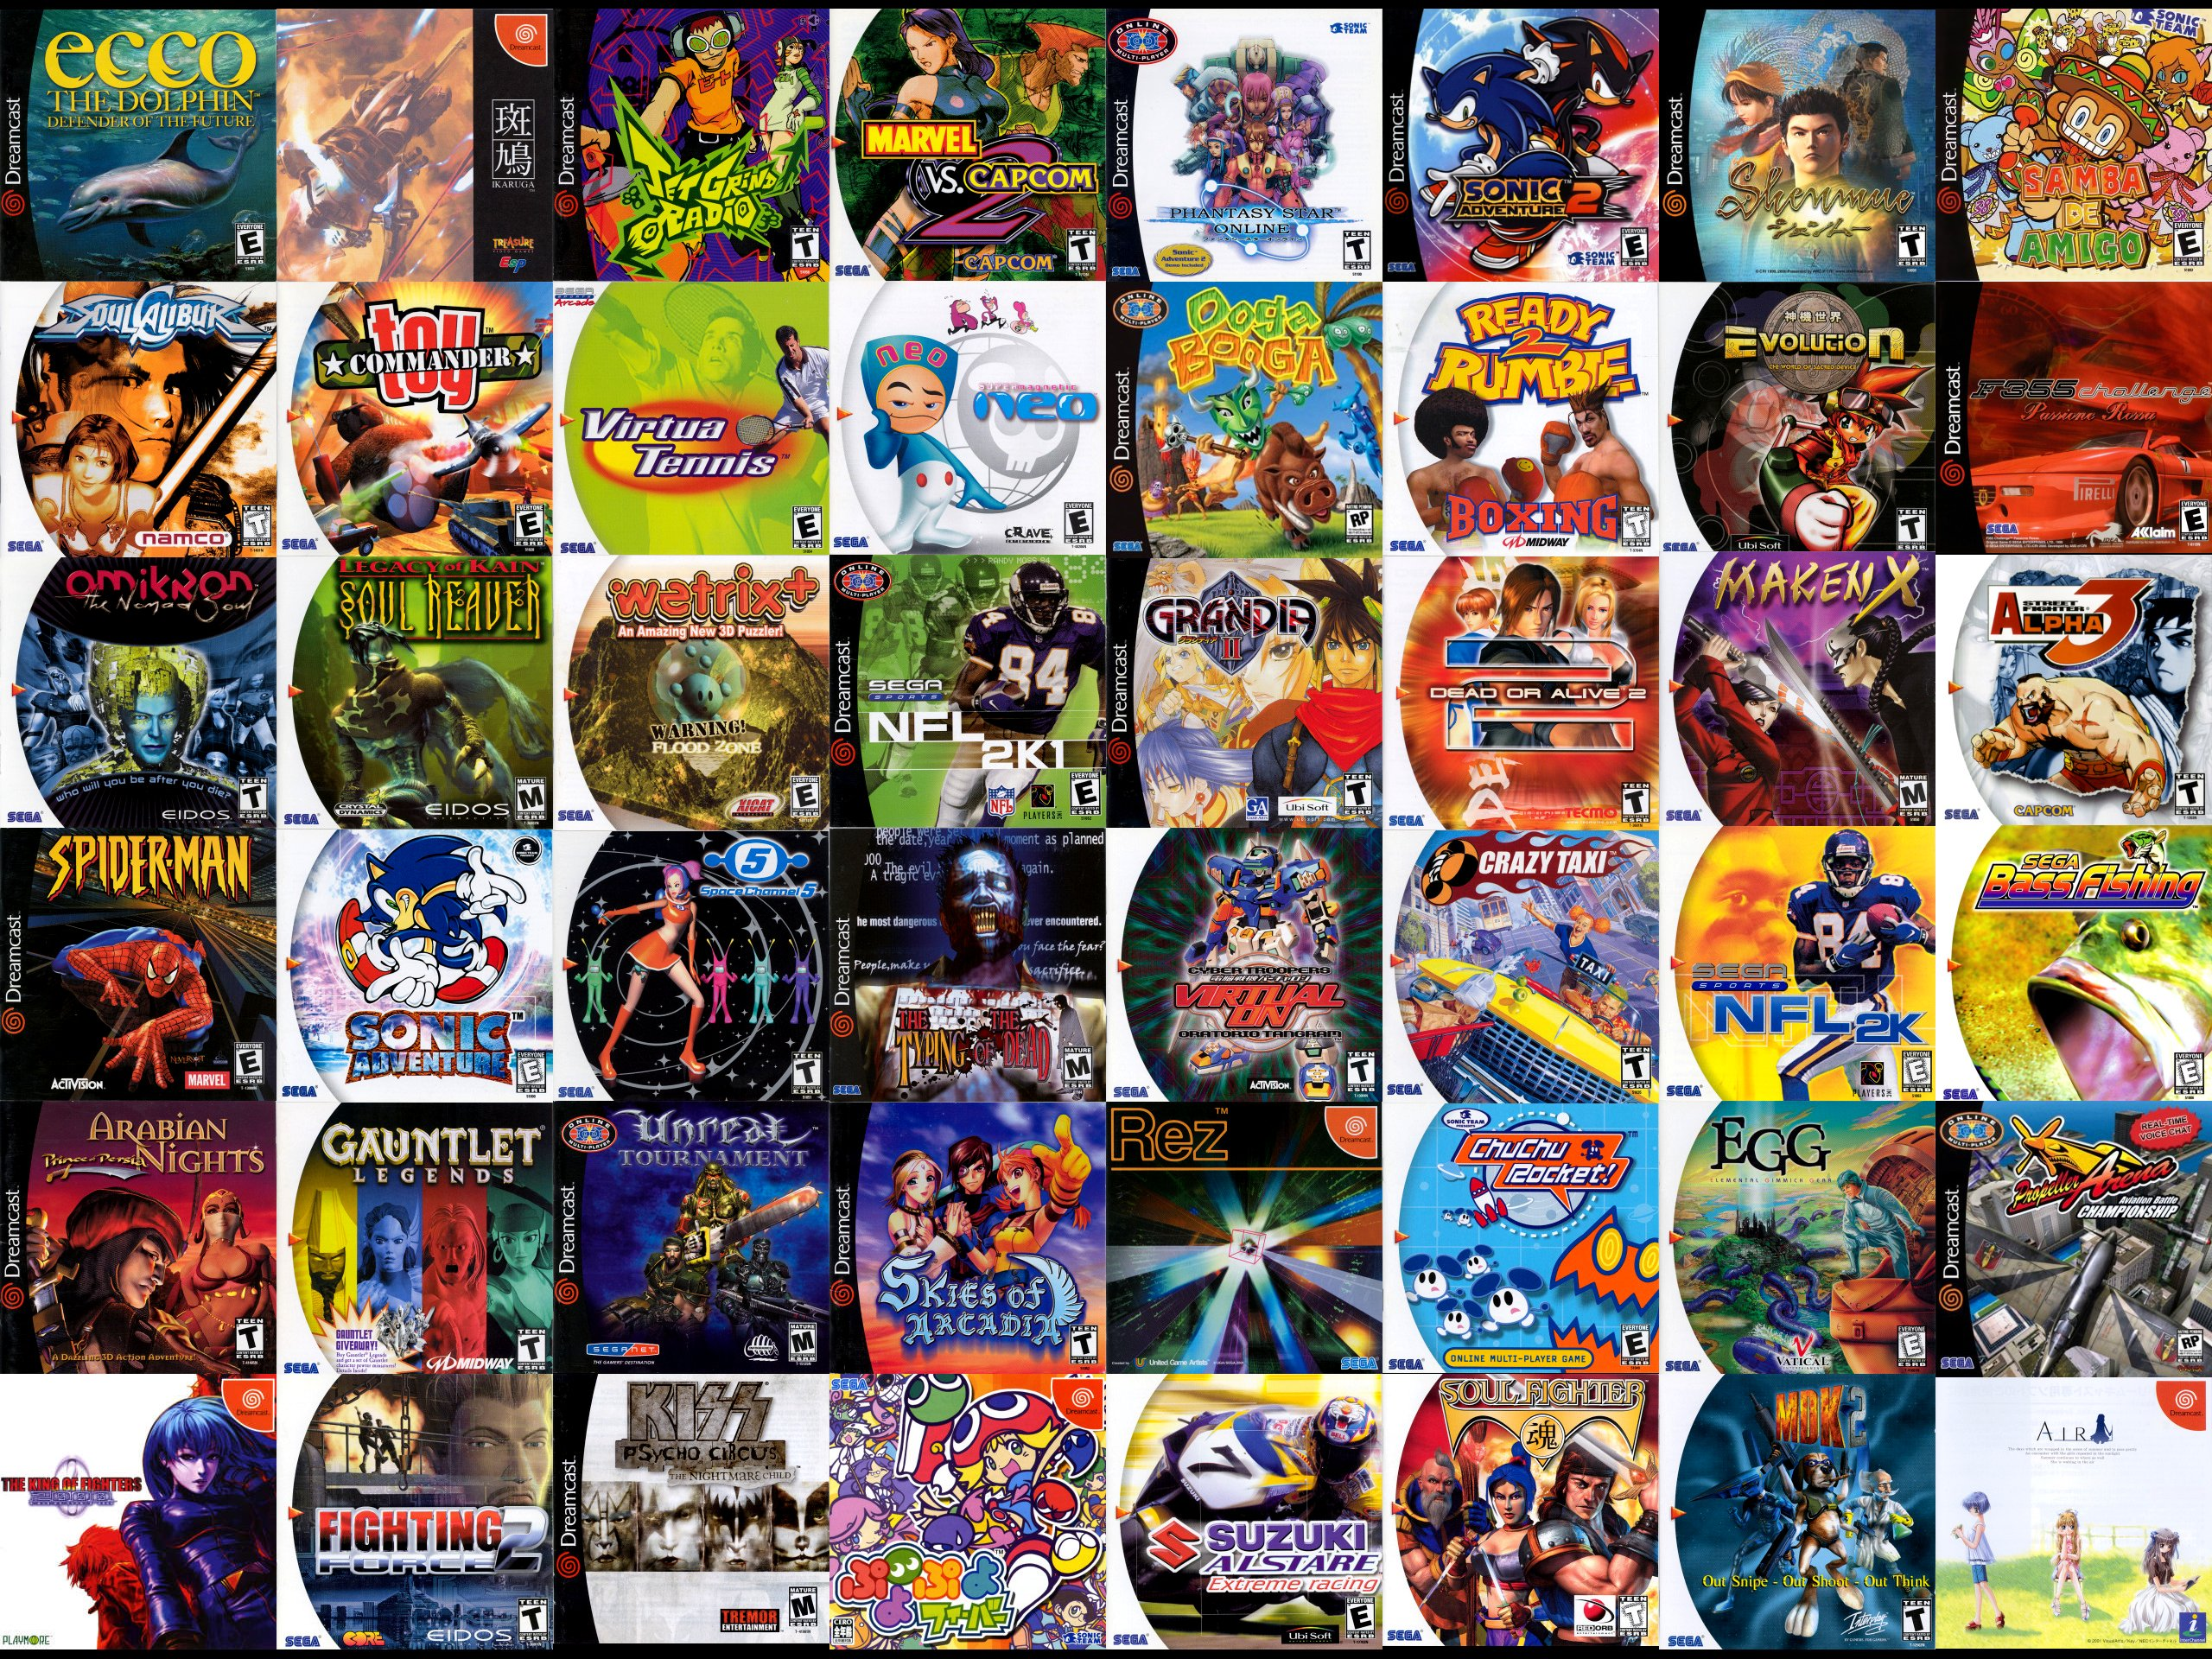 http://phandroid.s3.amazonaws.com/wp-content/uploads/2013/12/Dreamcast-games-cover-art.jpg